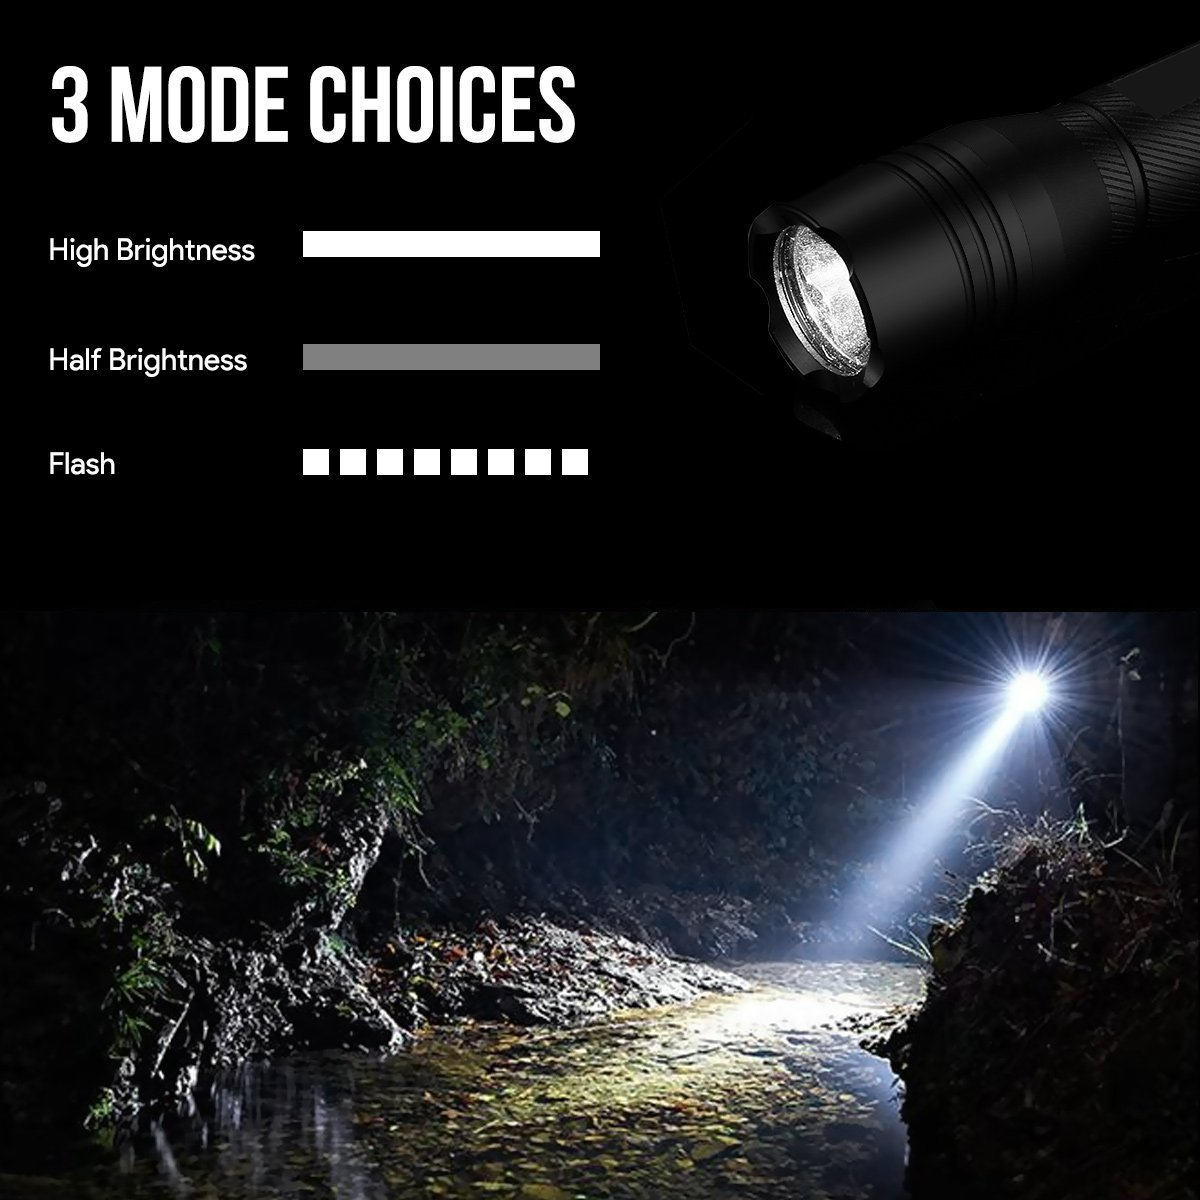 Le 700lm Rechargeable Led Tactical Flashlight Torch High Brightness 1000lm Circuit Light Longrange Hiking Camping 3 Mode 10w 2000 Mah 18650 Battery Usb Cable Included Portable Searching